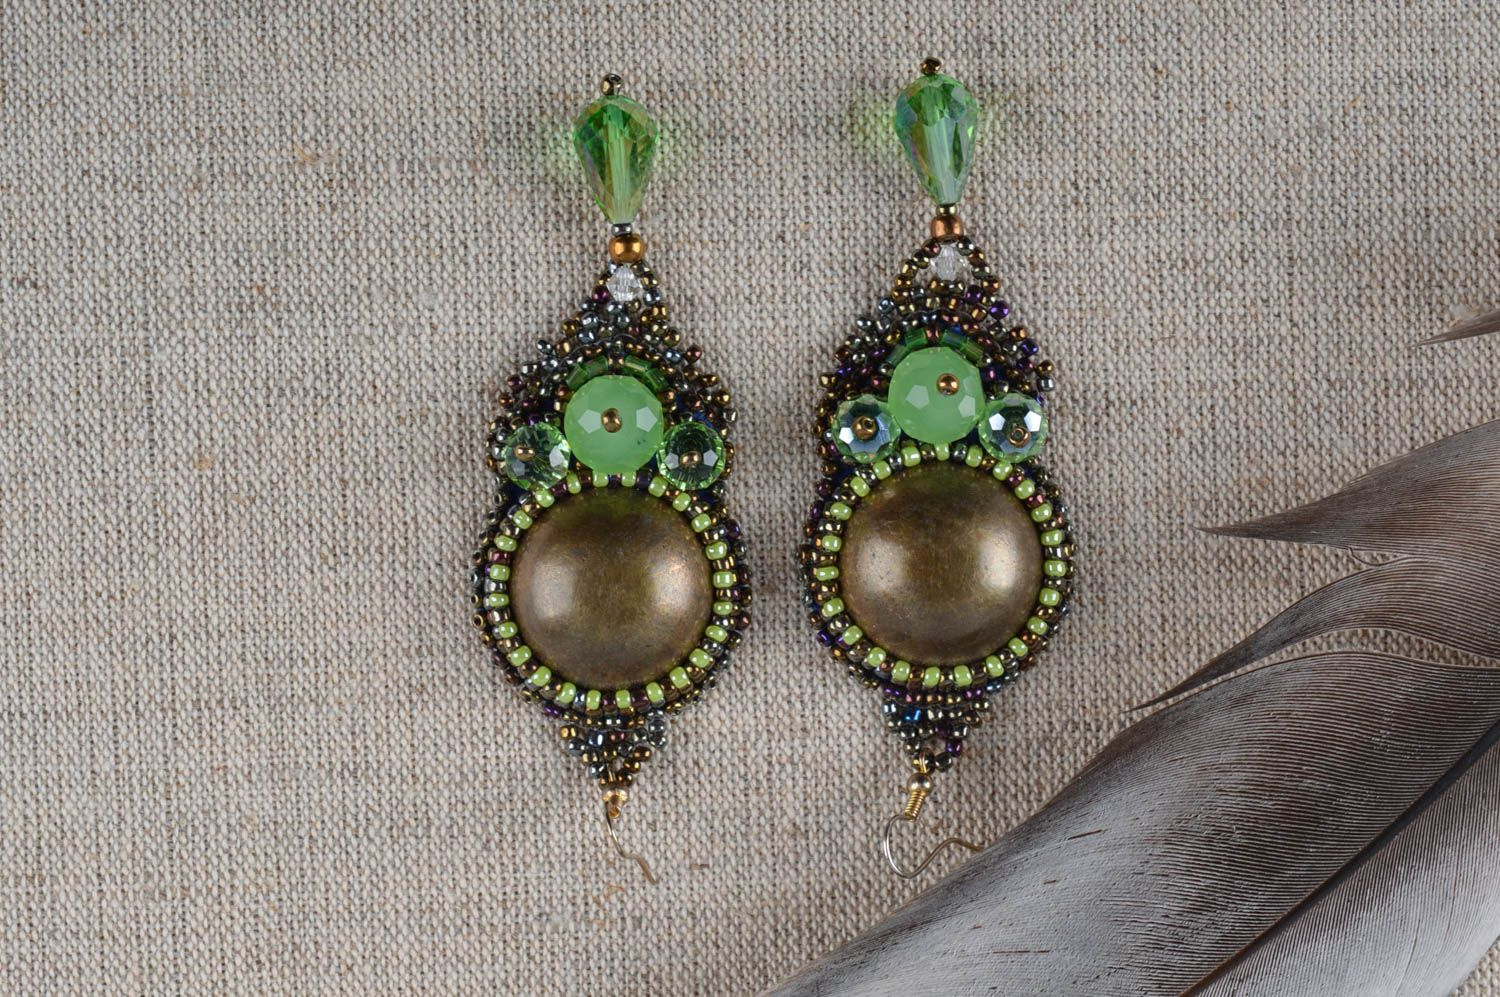 Unusual handmade beaded earrings costume jewelry designs fashion trends photo 1